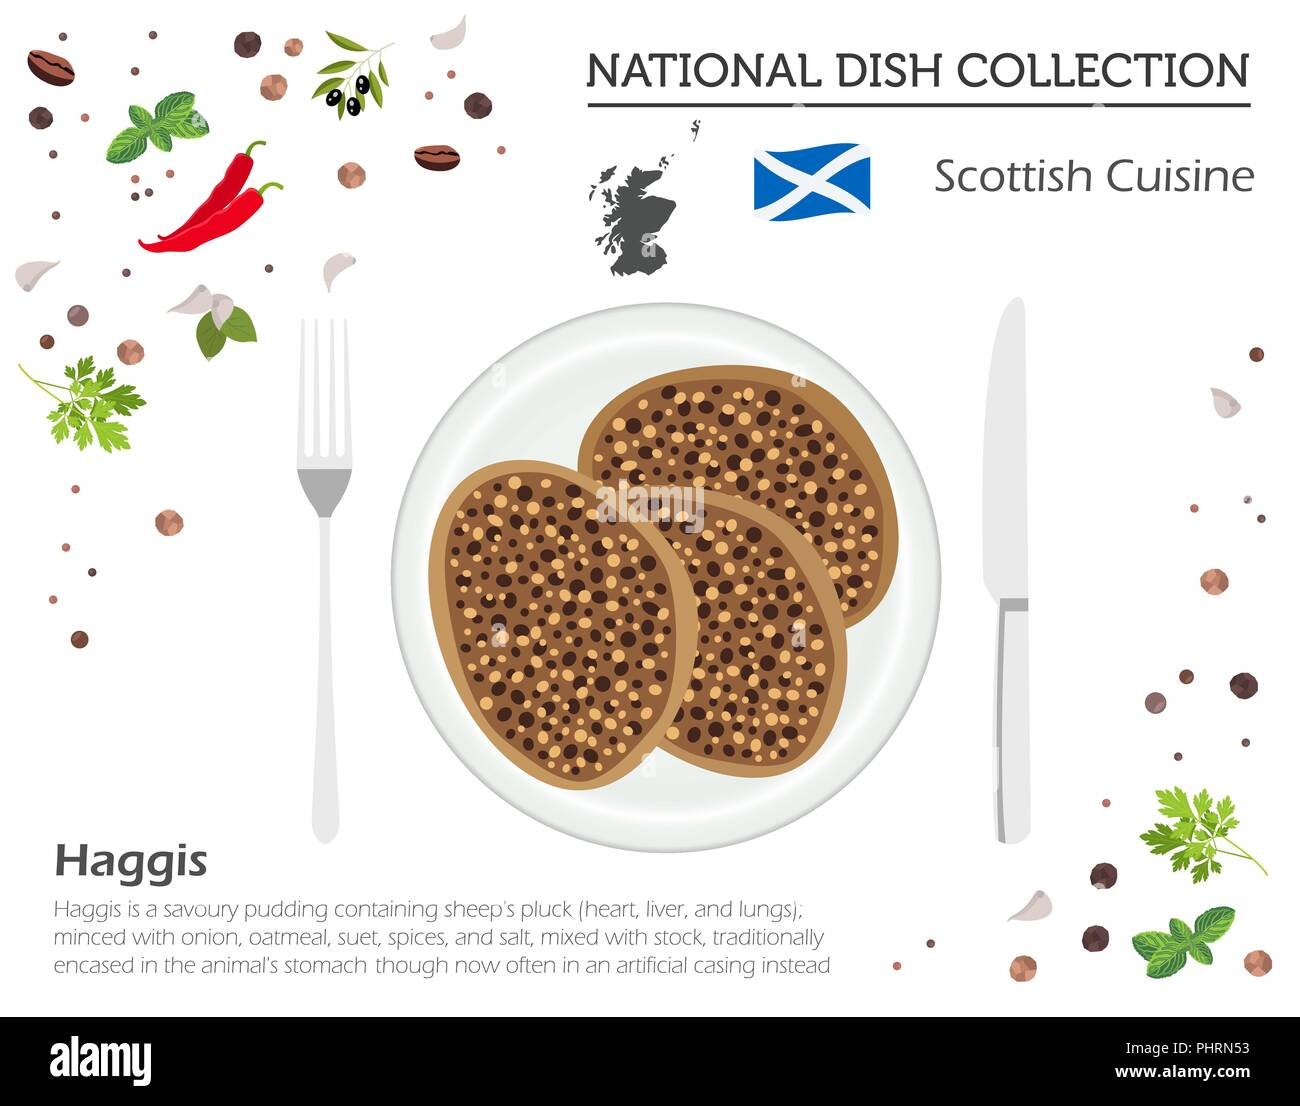 Scottish Cuisine. European national dish collection. Haggis isolated on white, infographic. Vector illustration Stock Vector